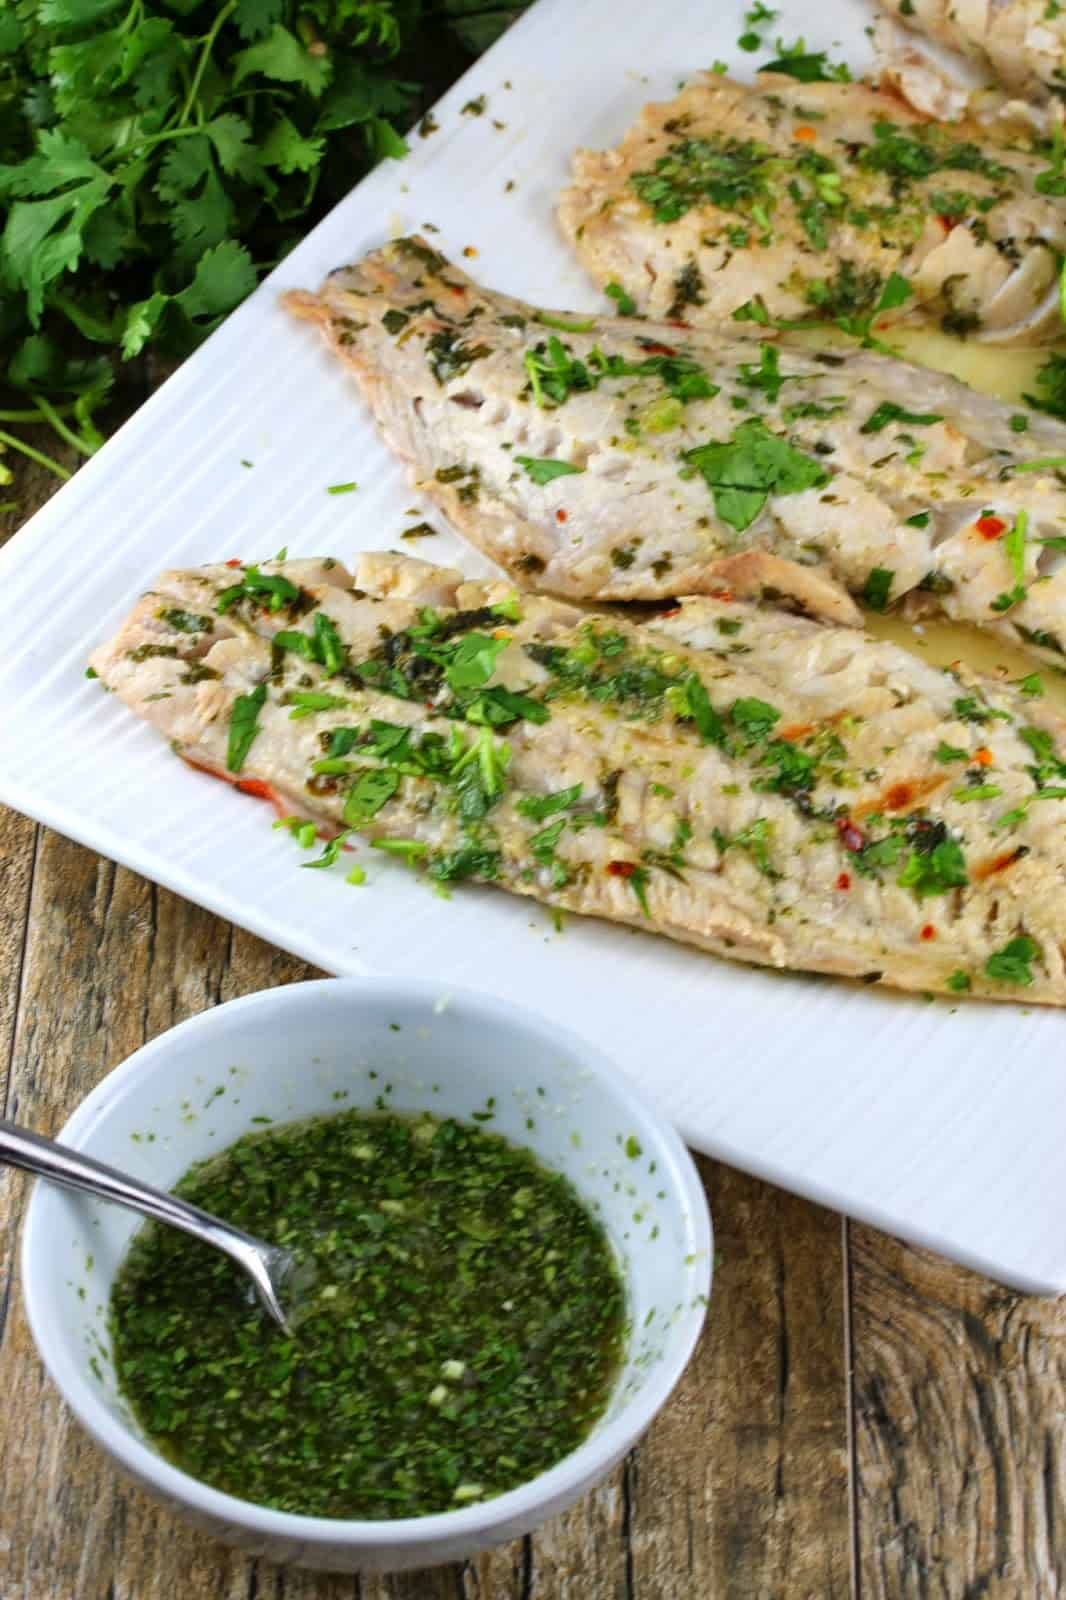 Thai grilled fish with green dipping sauce on the side